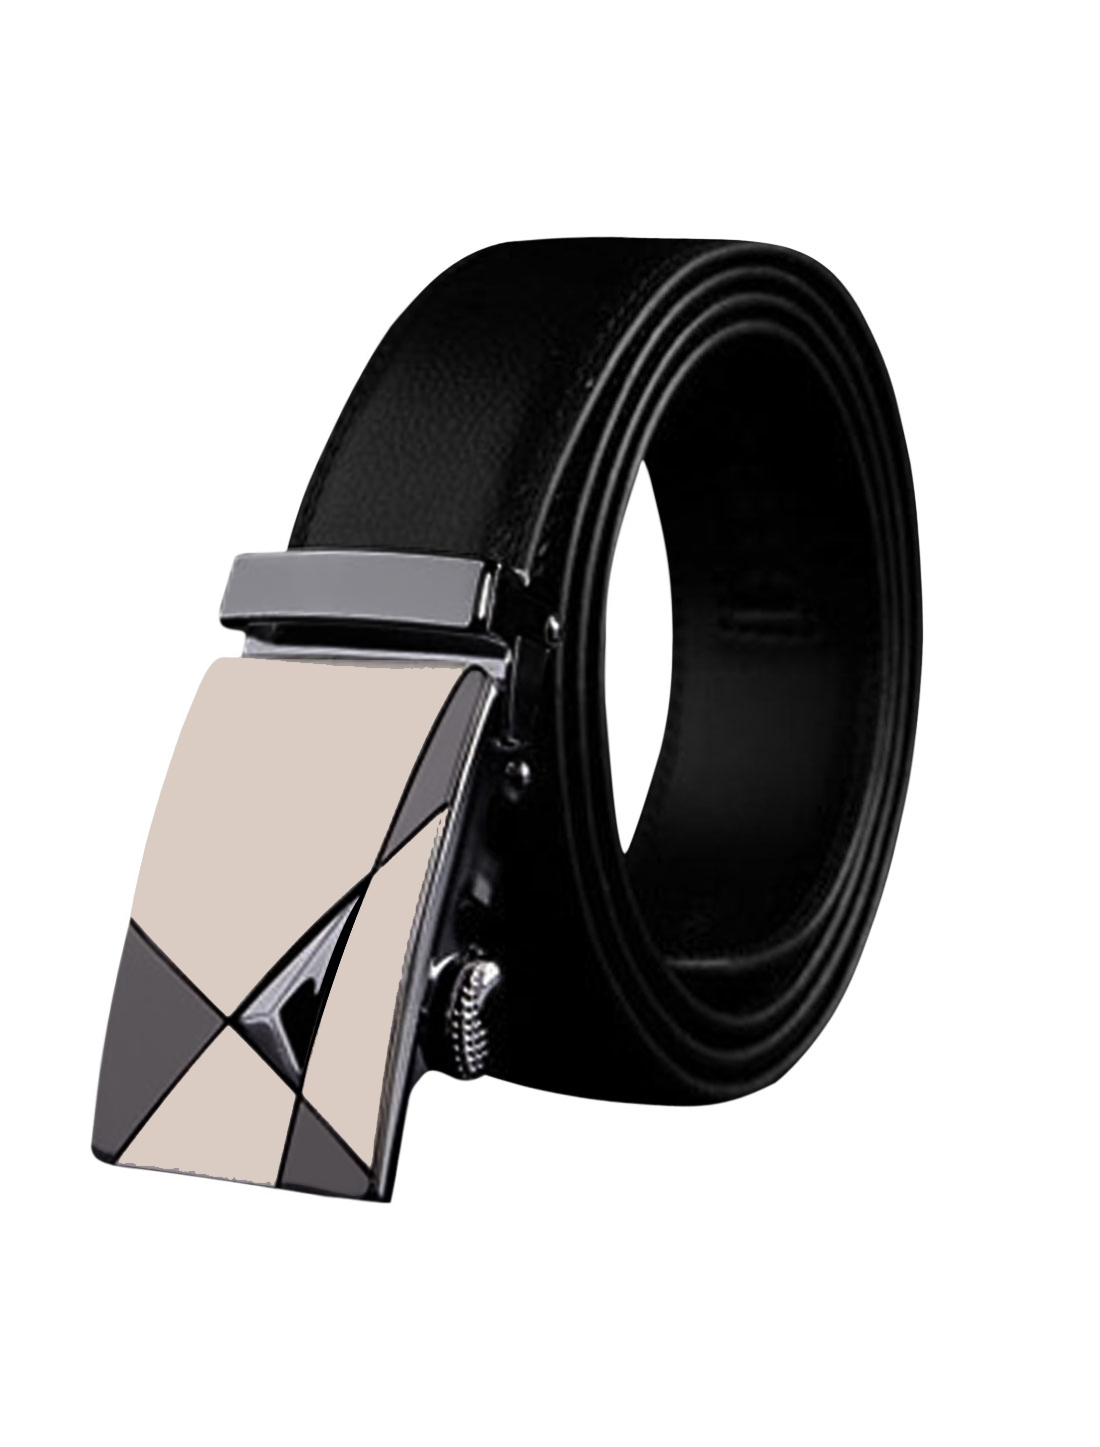 Men Slide Buckle Adjustable Holeless PU Ratchet Belt Black 125CM